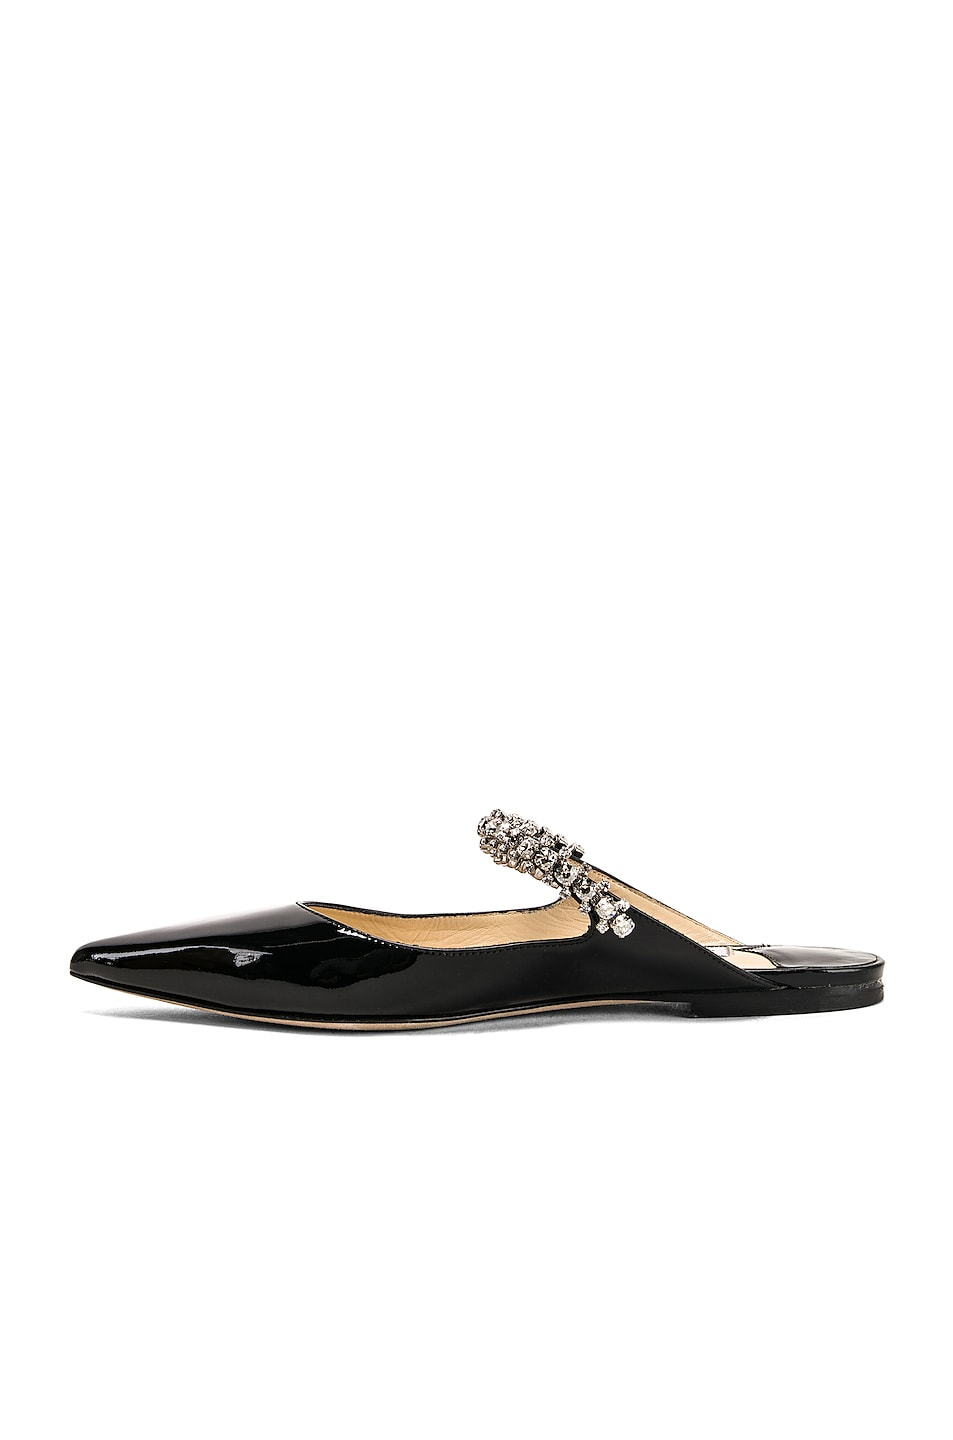 Image 5 of Jimmy Choo Patent Leather Bing Flat in Black